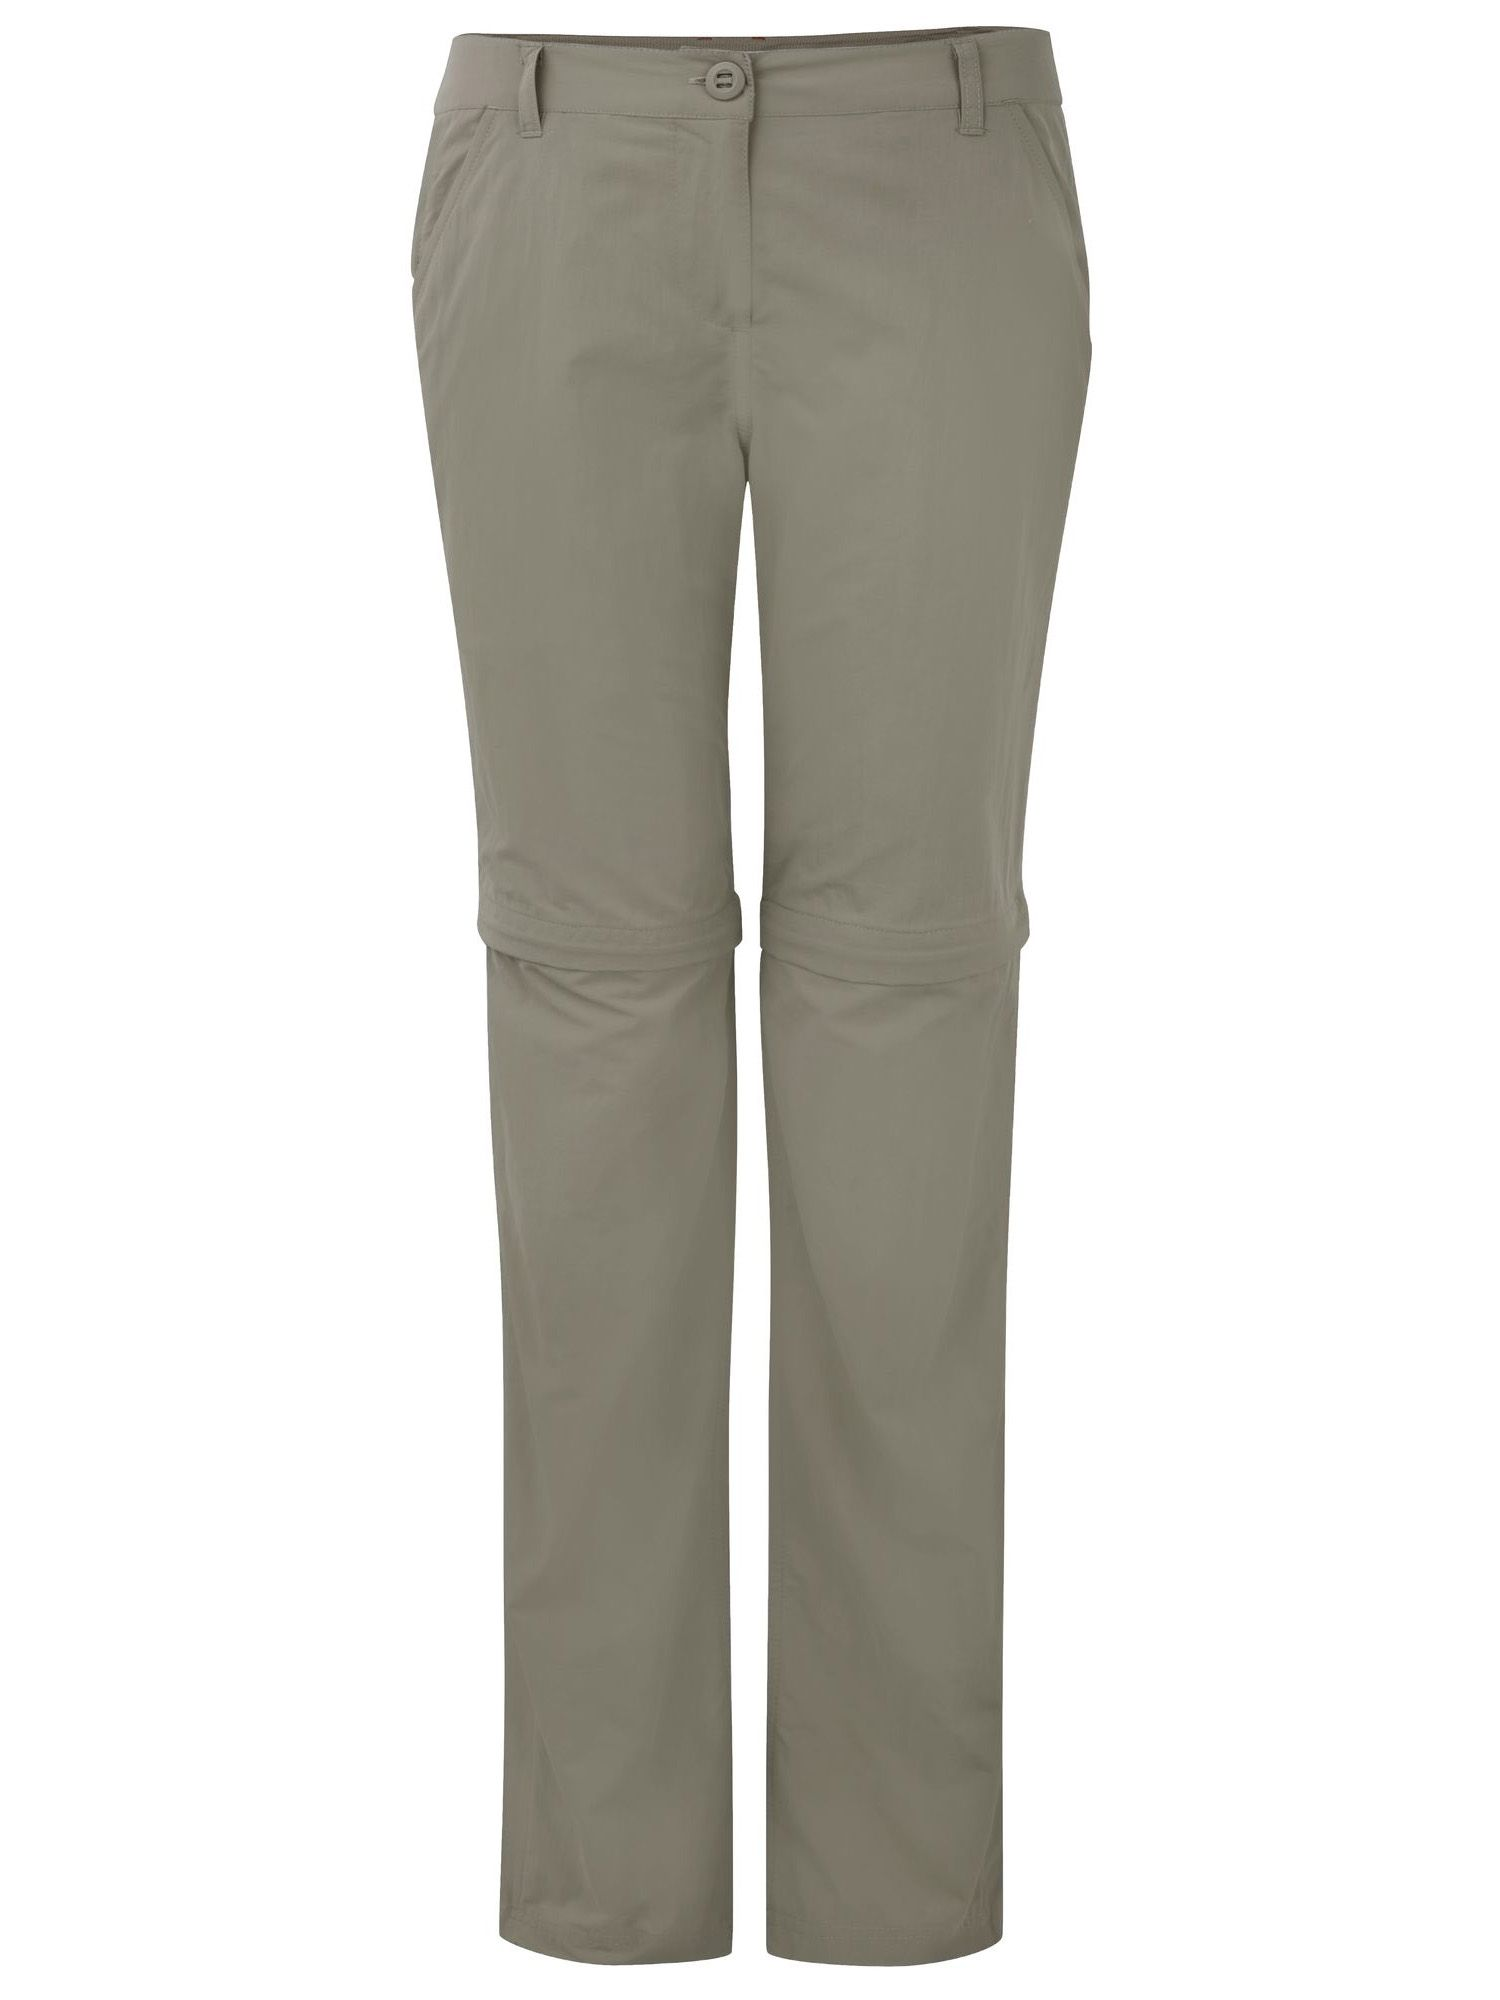 Craghoppers NosiLife Convertible Walking Trousers, Mushroom